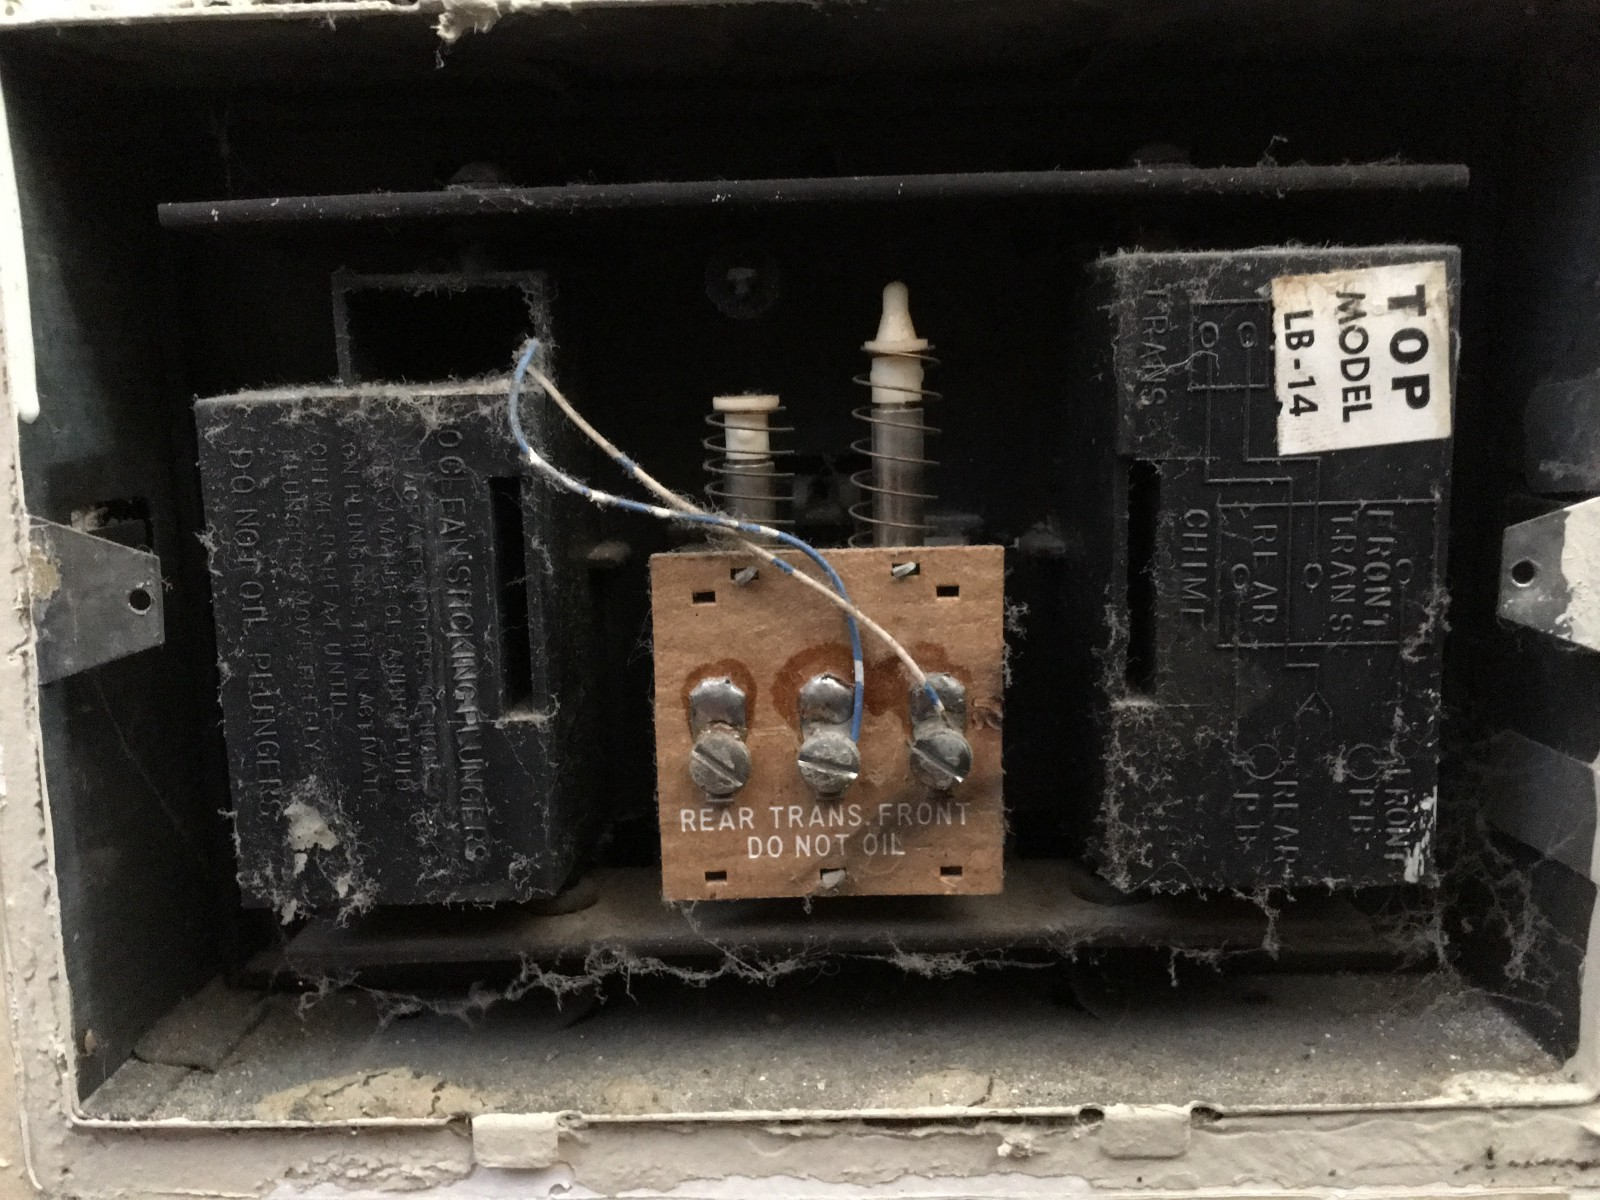 Build A Tweeting Doorbell Charltons Blog Electrical Wiring Not Working The Circuitry That Controls Bell Ringing Solenoids Two Wires Become Energized When Is Pressed Powering An Electromagnet Forces